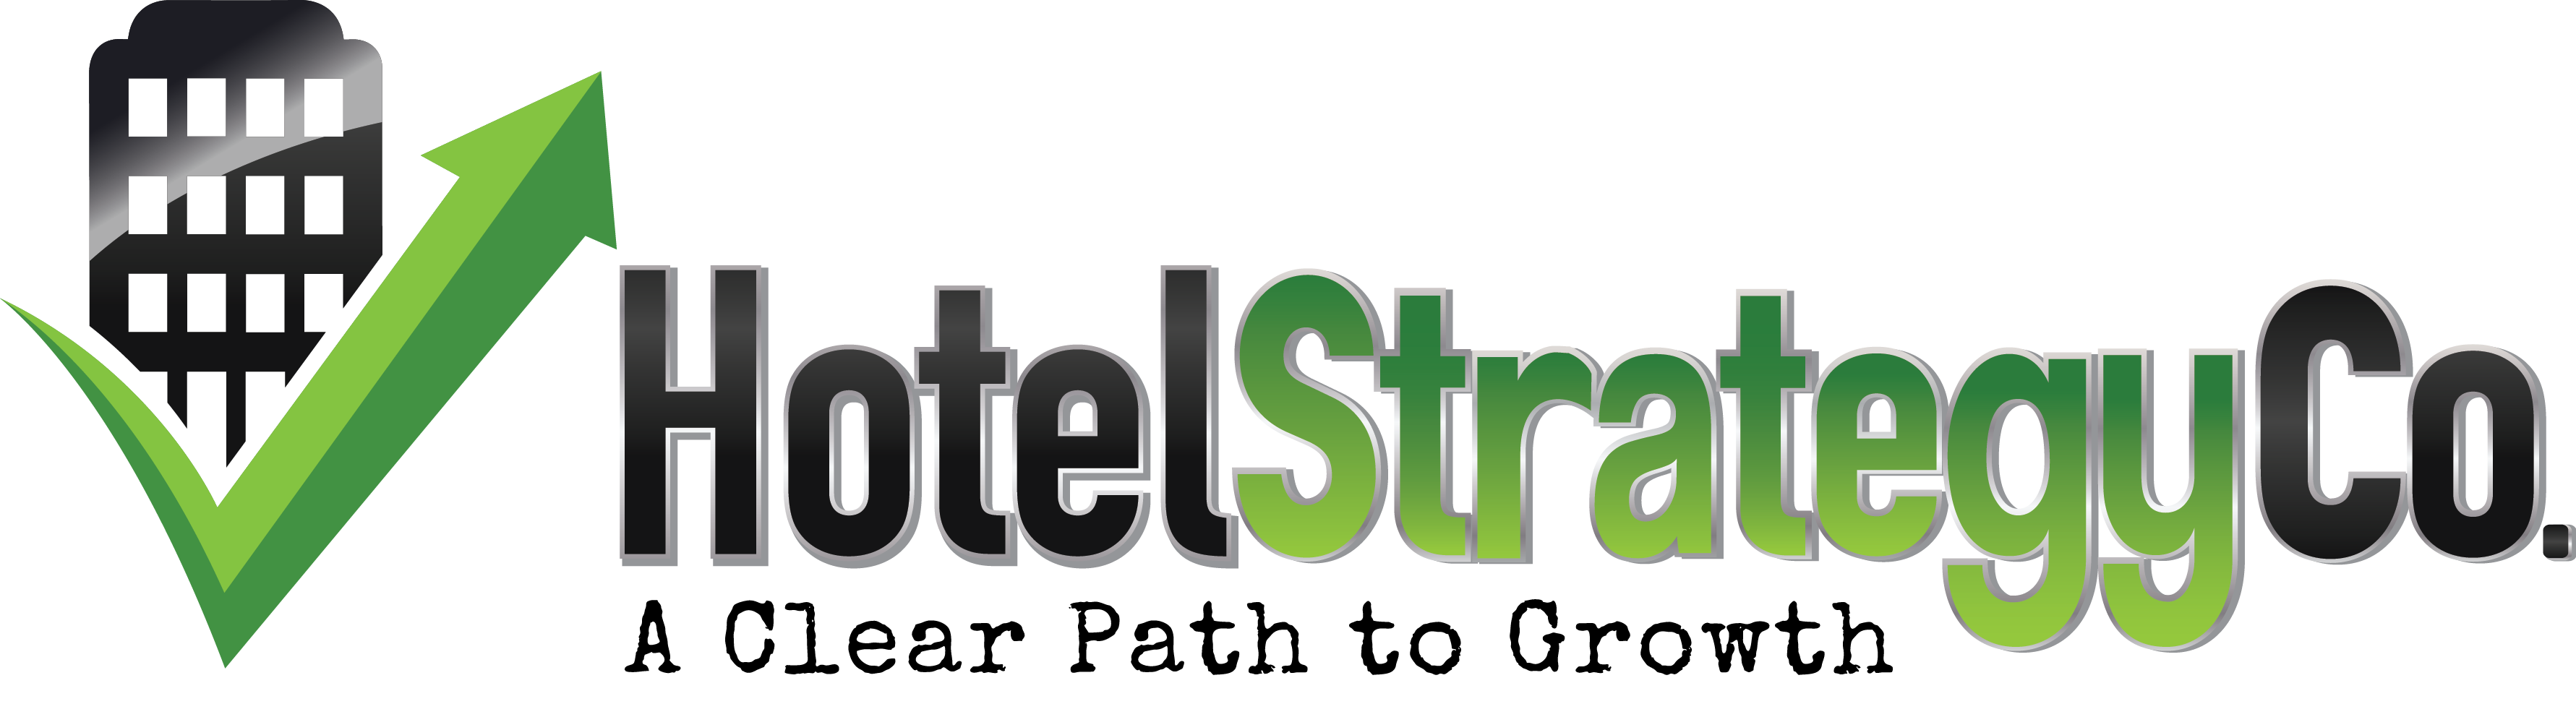 Hotel Strategy Co.